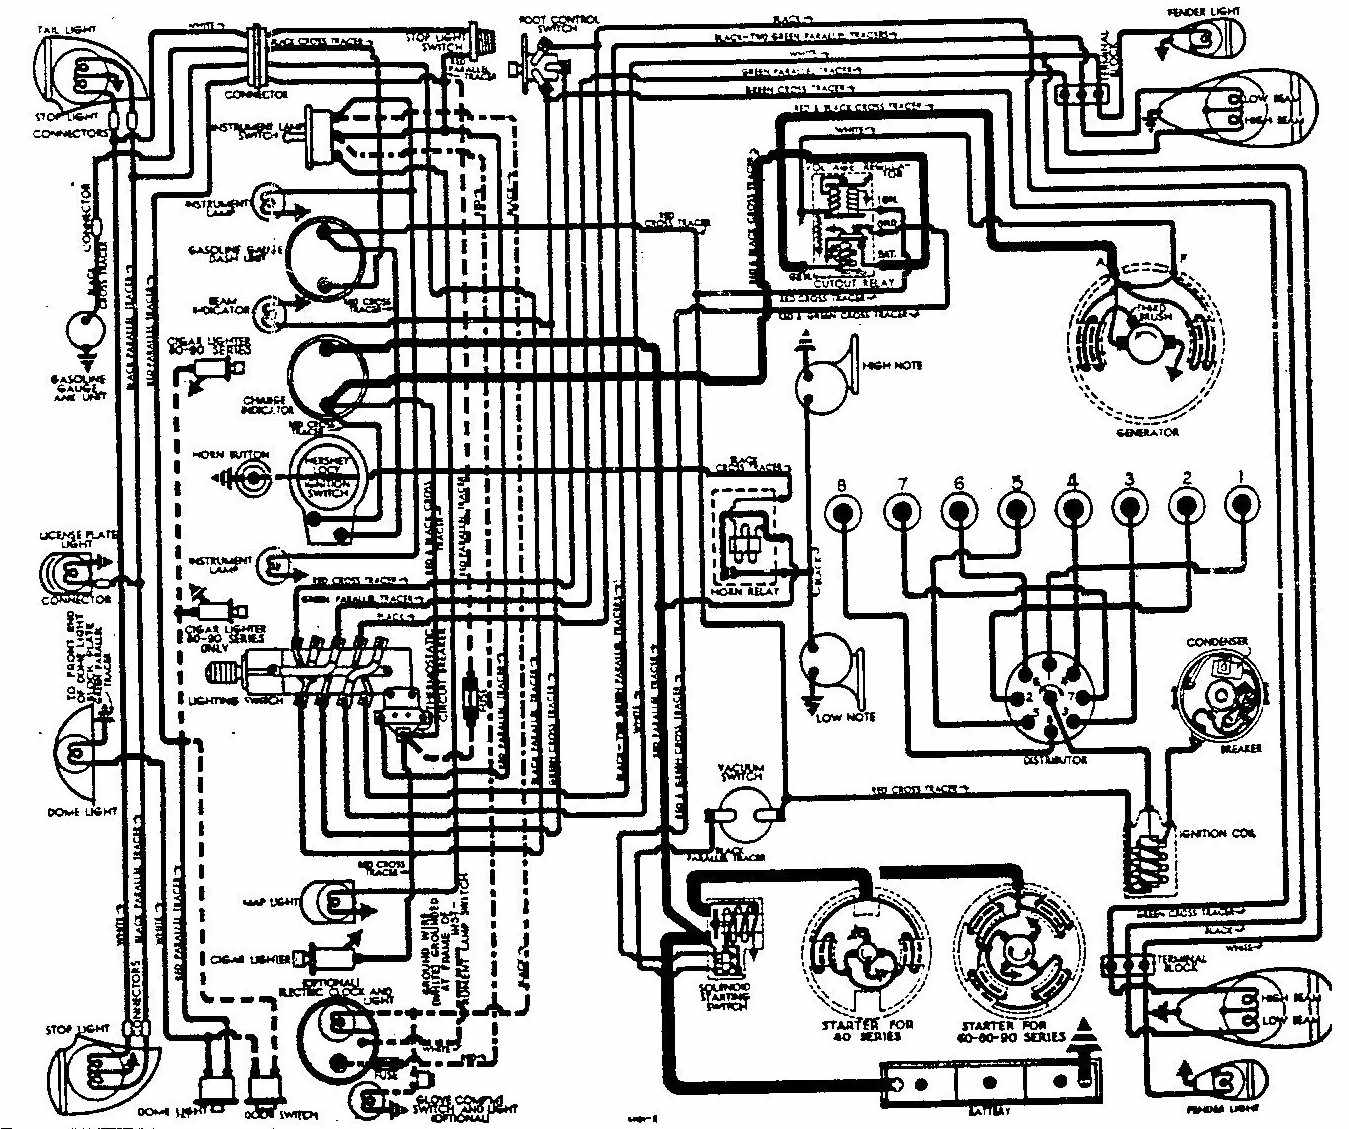 Buick+Roadmaster+1938+Electrical+Wiring+Diagram ford 7710 tractor wiring diagram ford discover your wiring Ford Tractor Wiring Harness Diagram at couponss.co